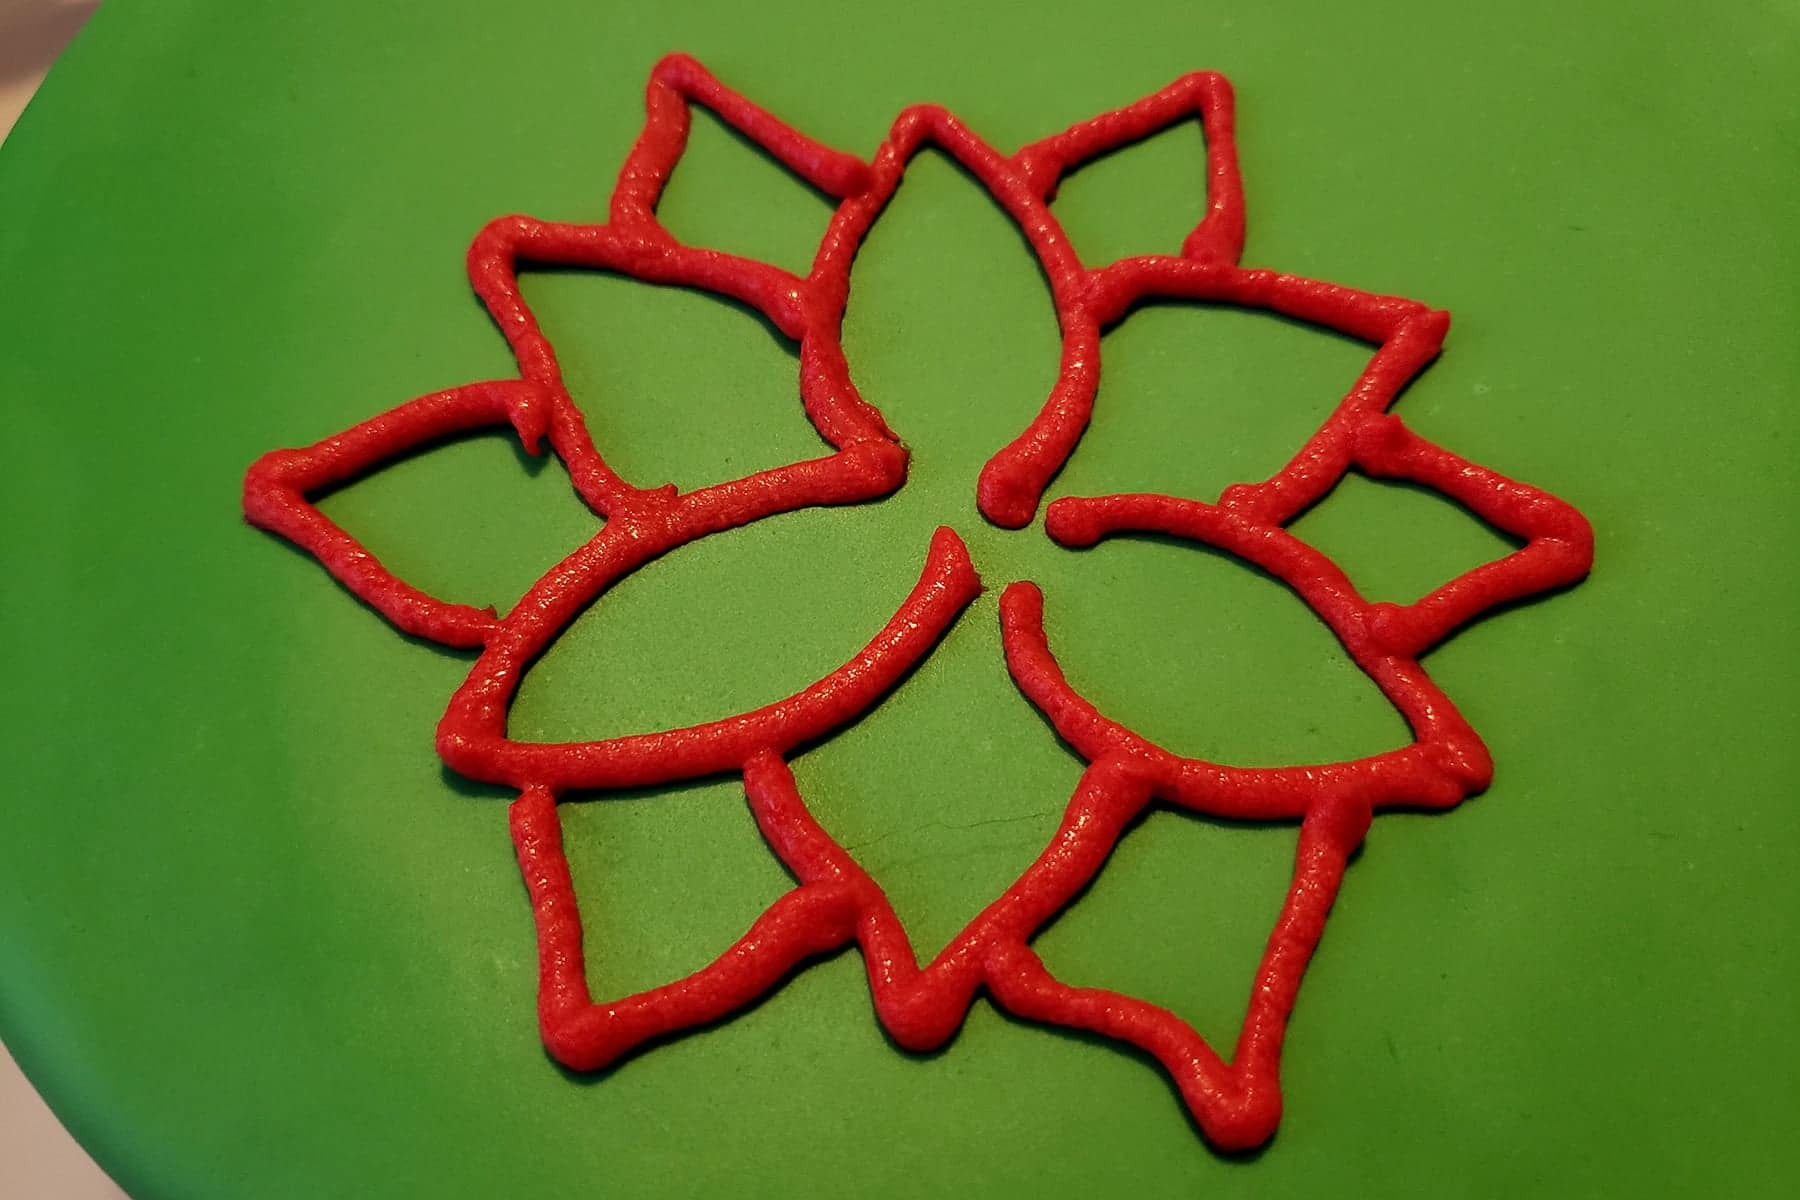 A poinsettia design has been piped in red frosting, on a background of green fondant.